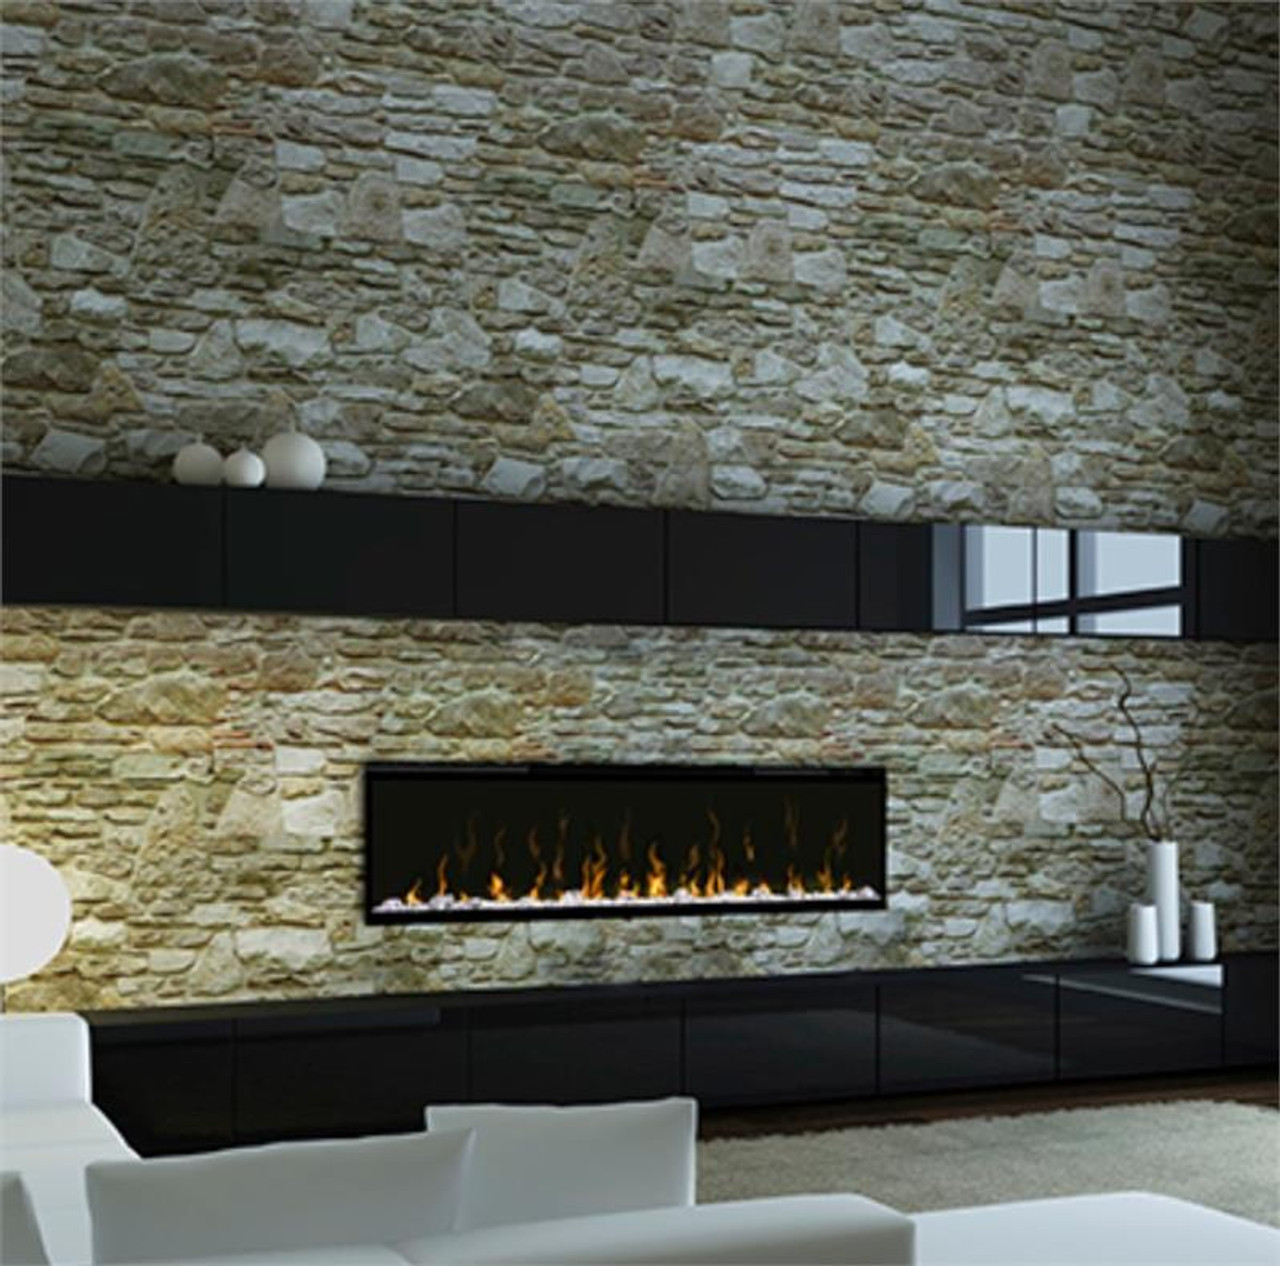 Dimplex Ignite XL Electric Fireplace